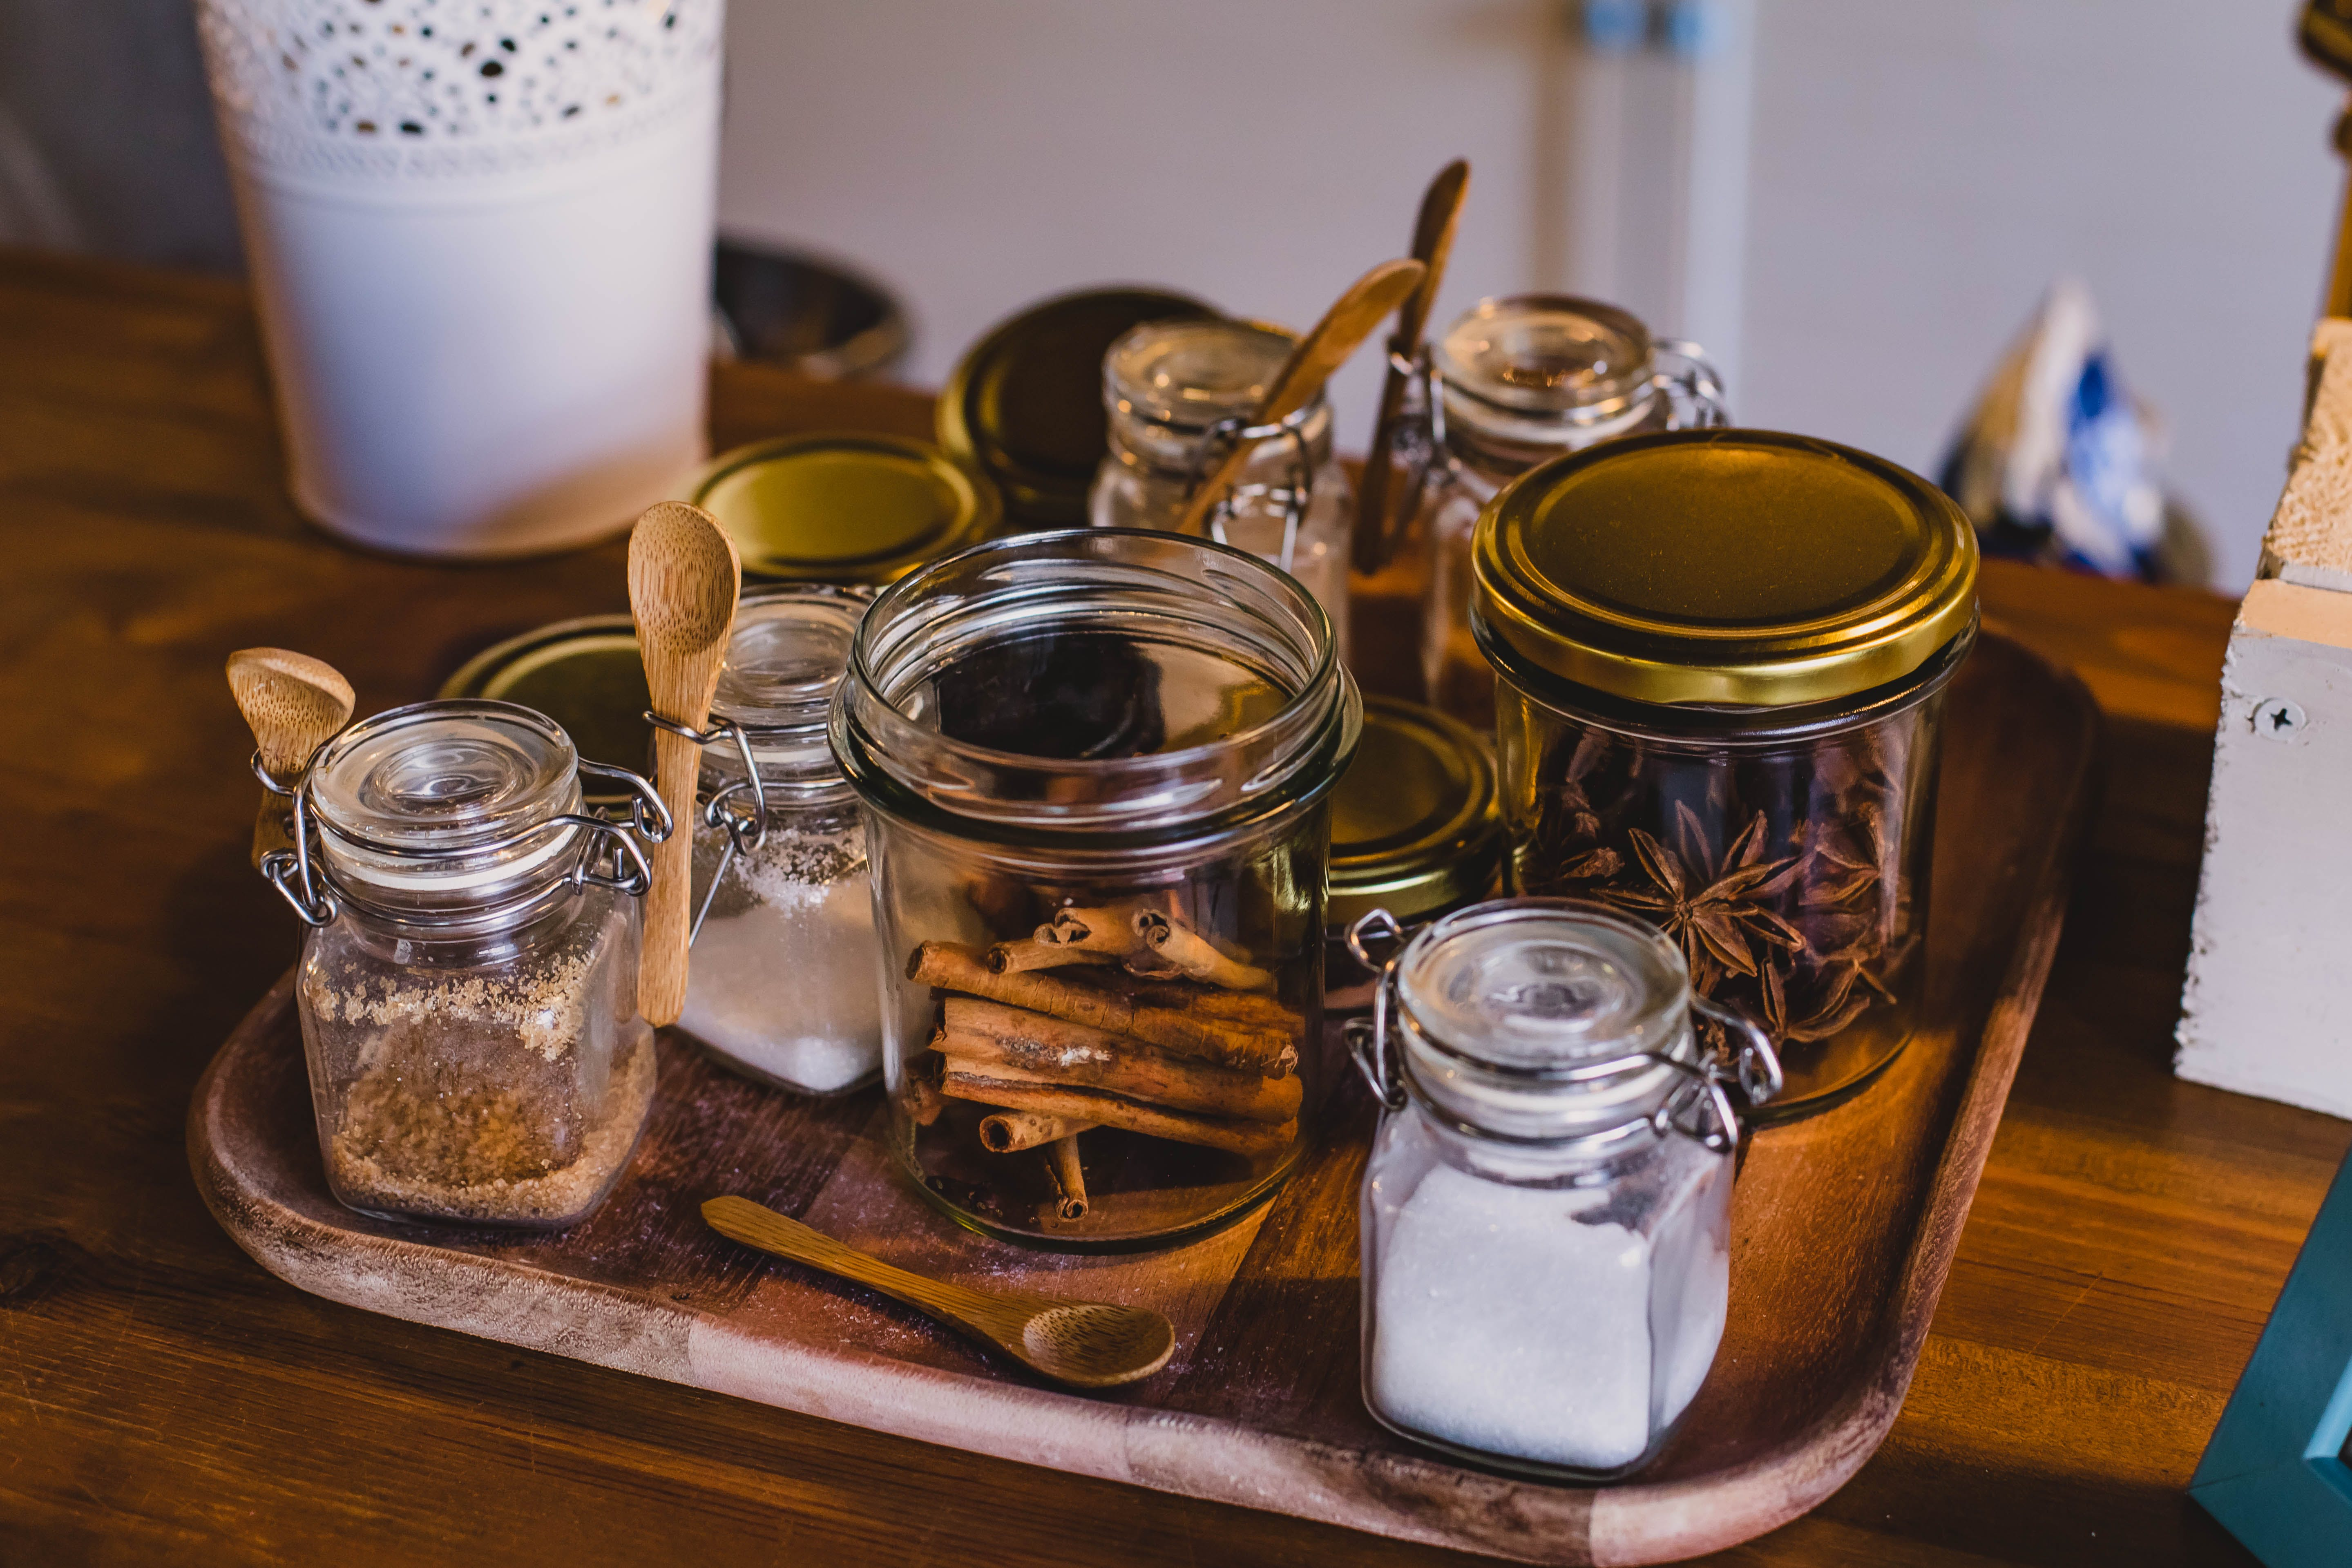 Clear Glass Jars on Top of Tray